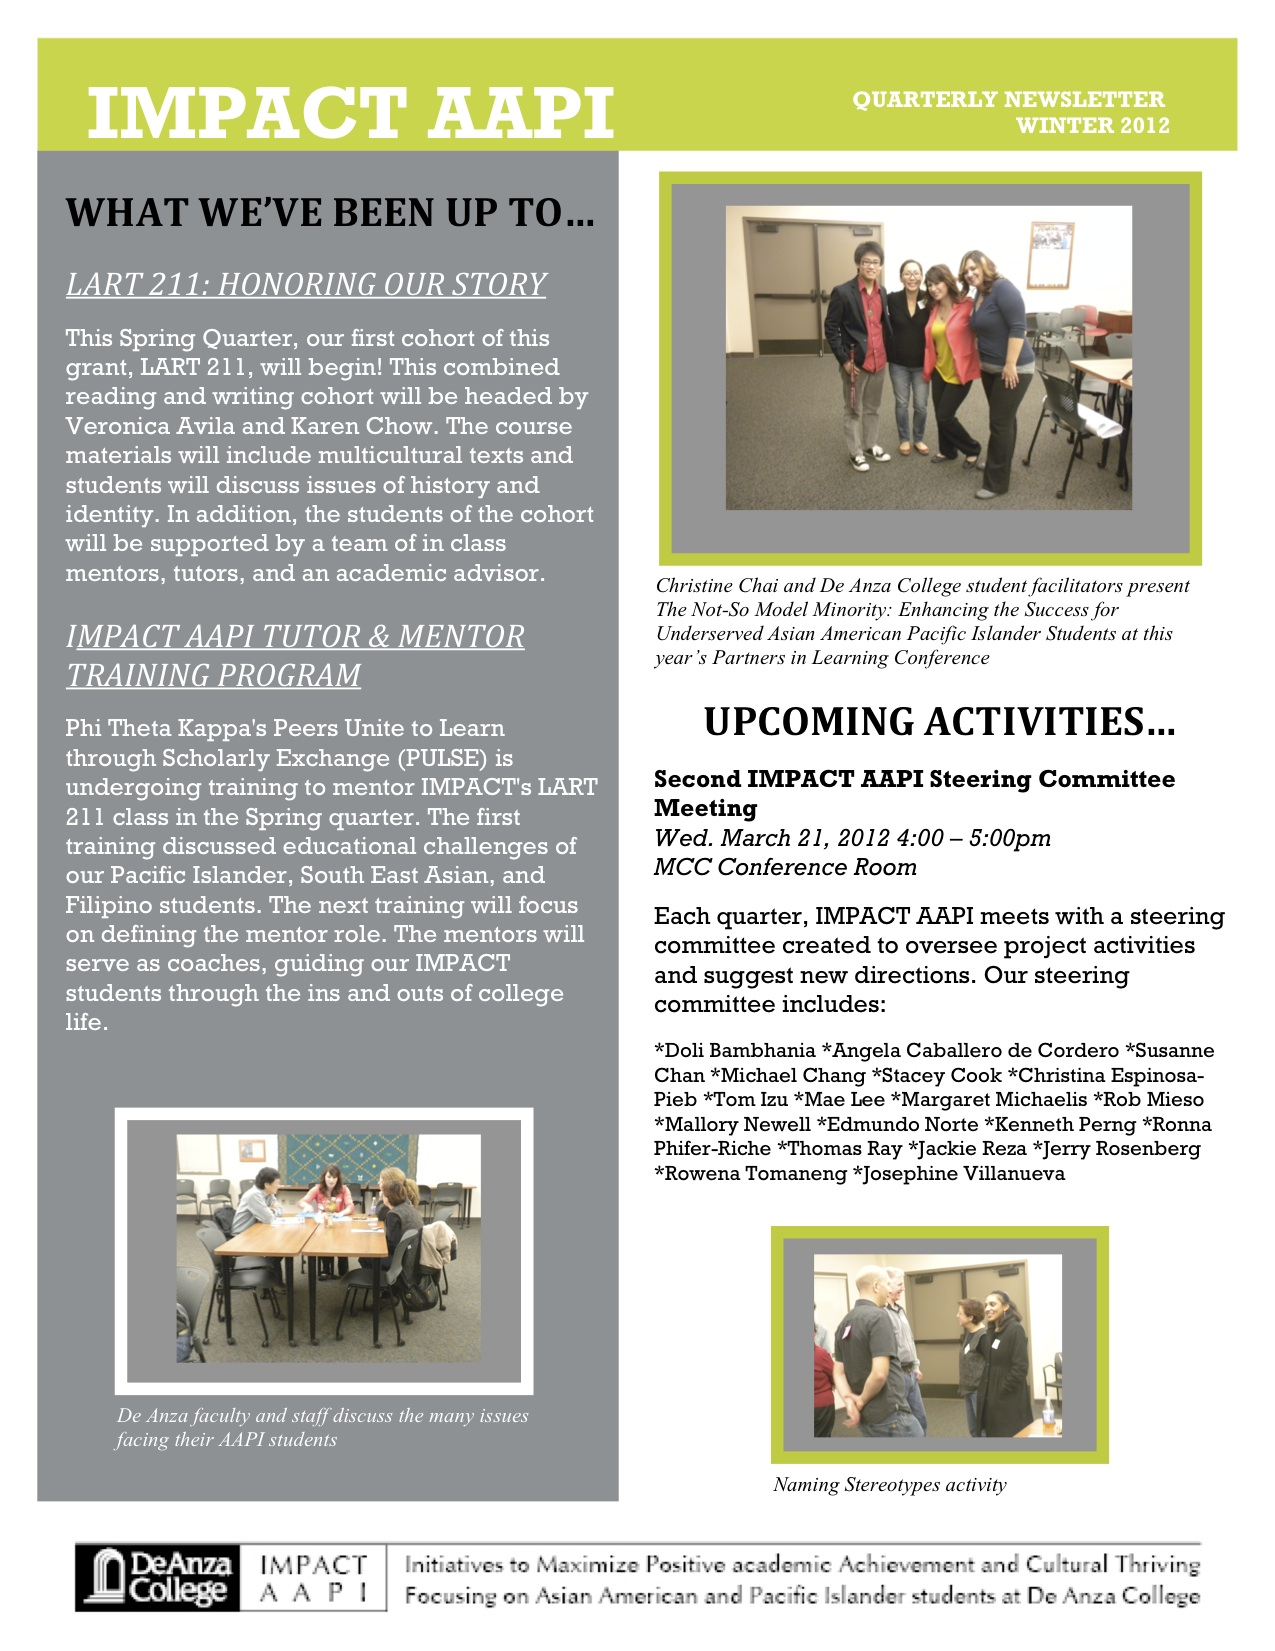 Winter '12 IMPACT AAPI Newsletter